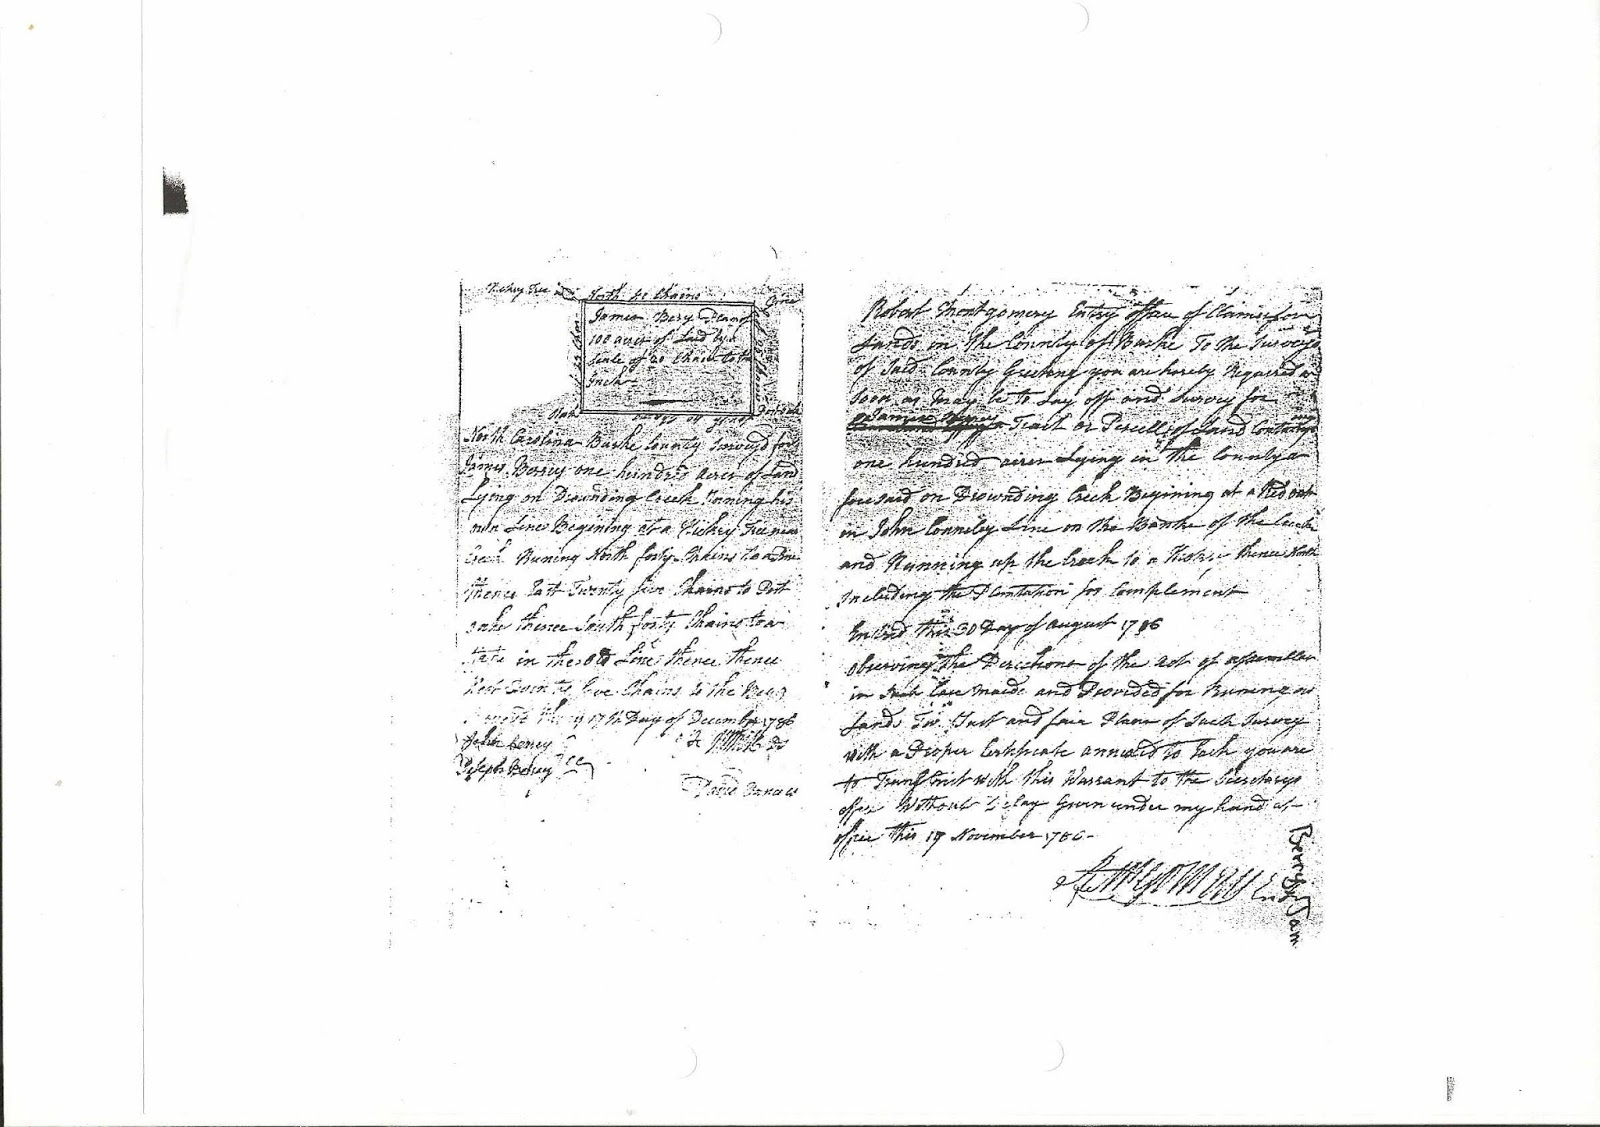 Berry History: John Berry, son of William Berry, Sr. 1774